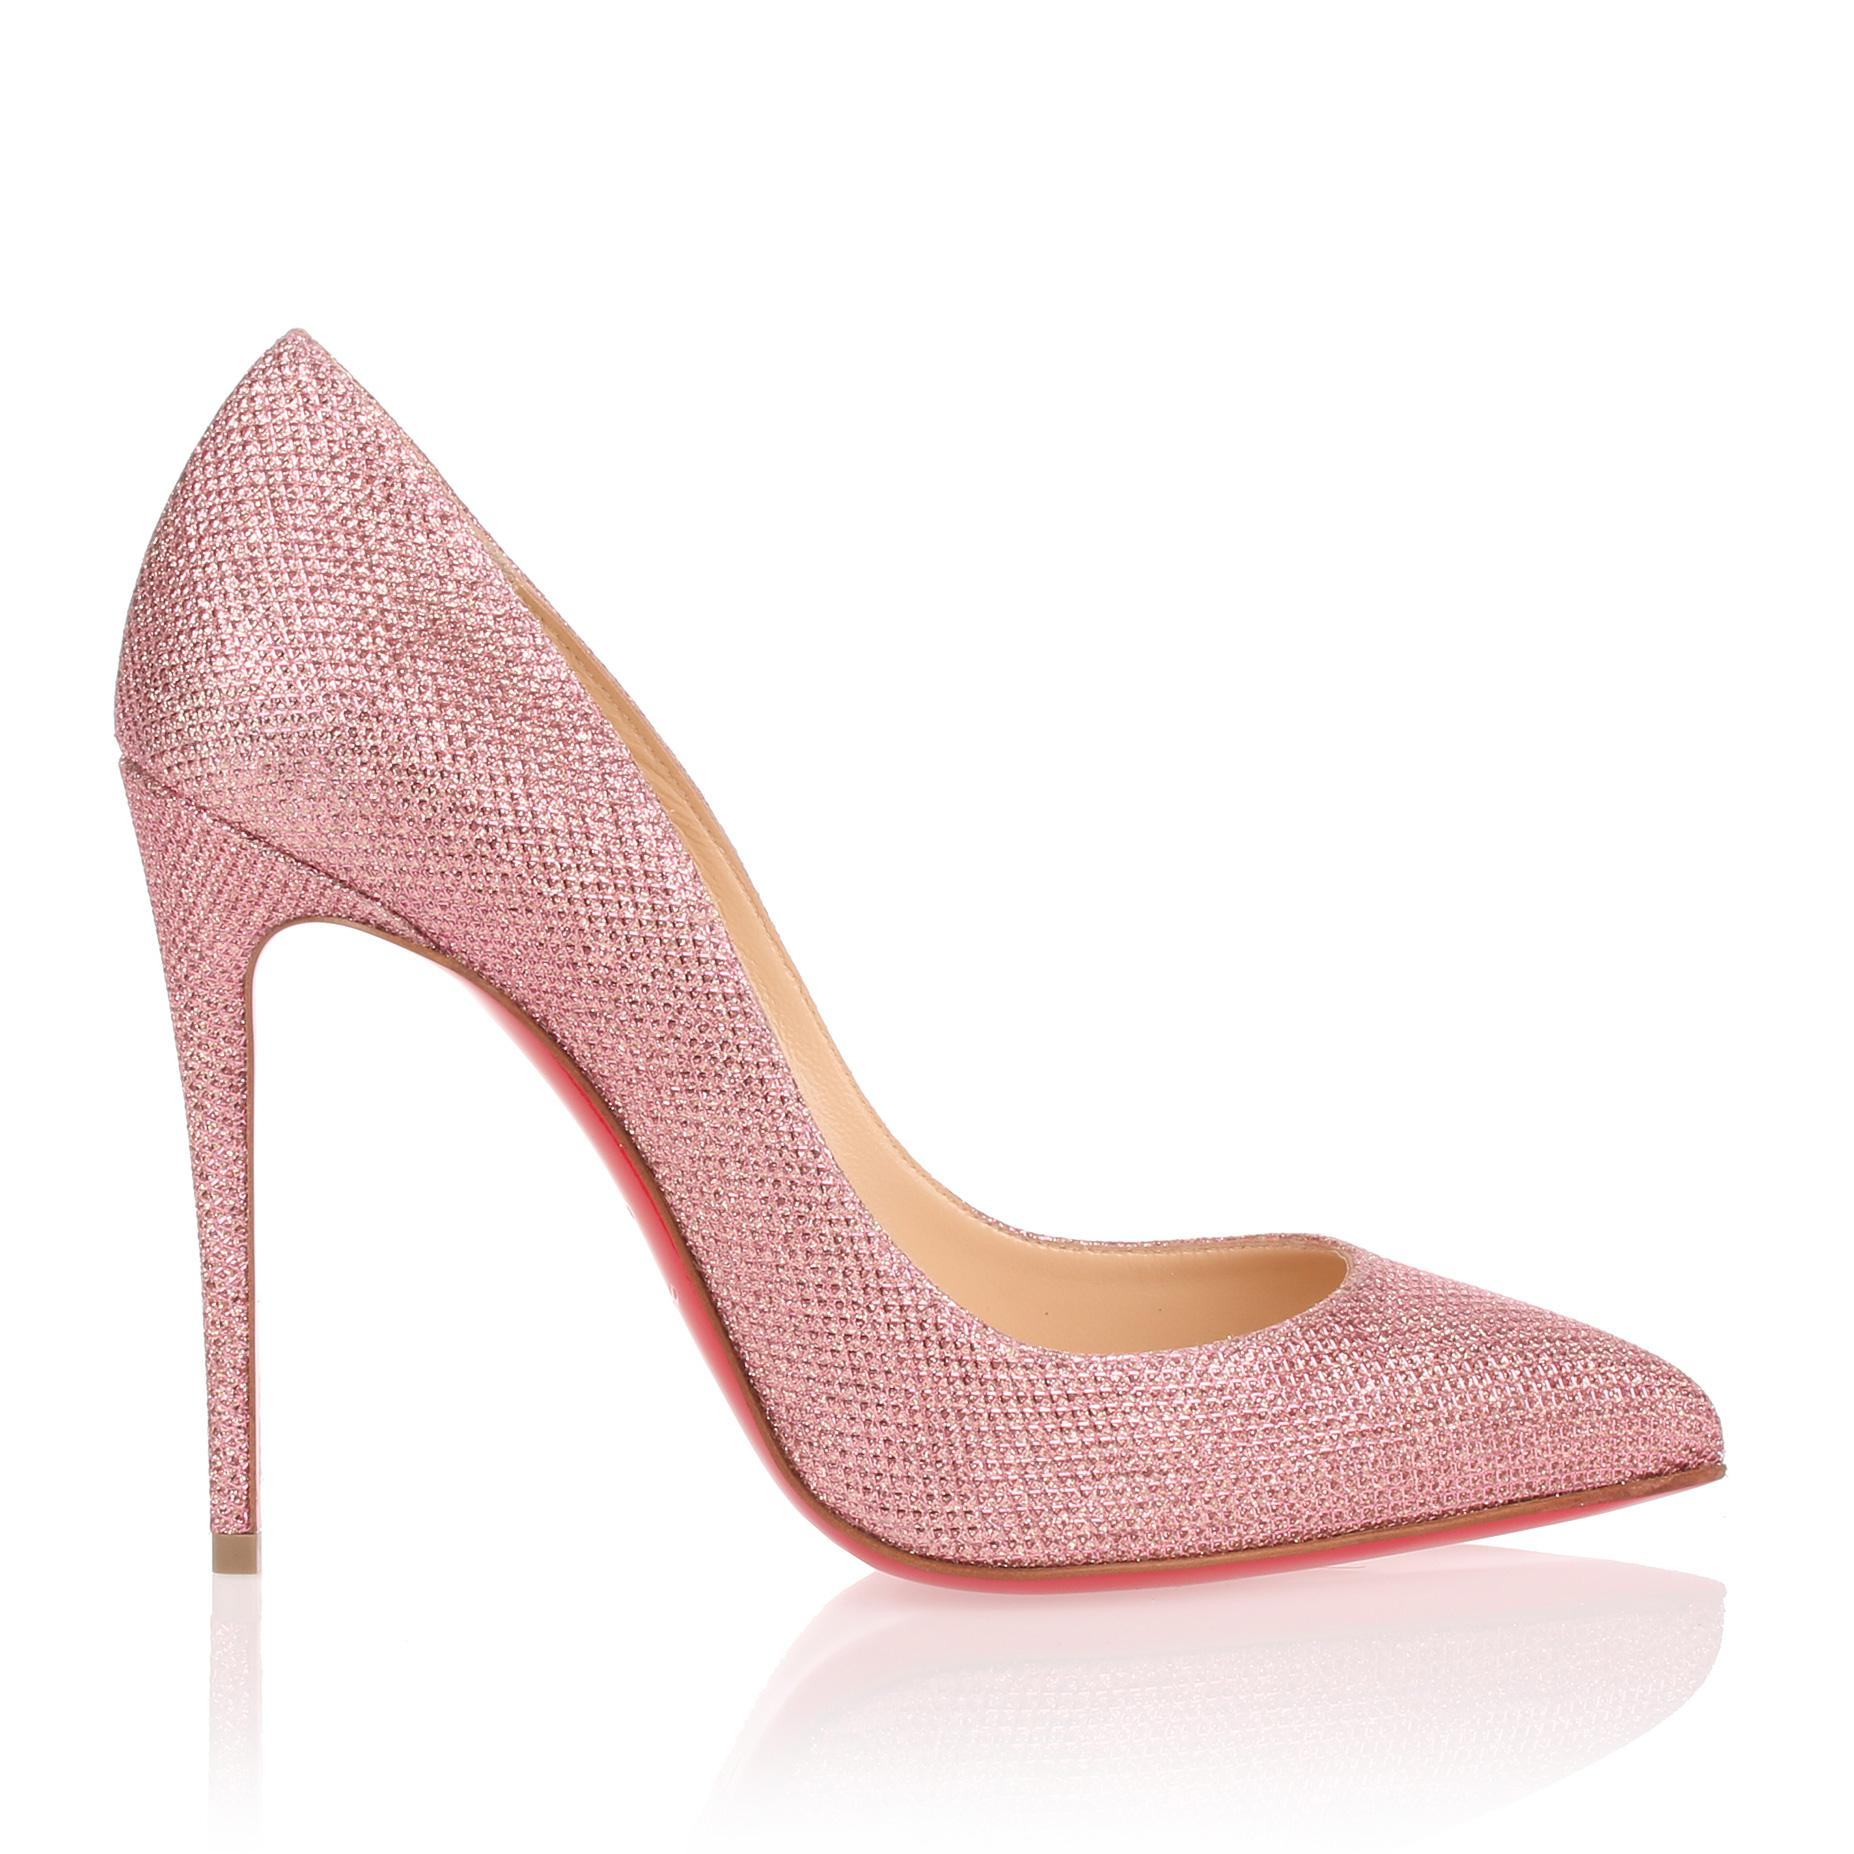 Pigalle Follies 100 powder pink glitter pump Christian Louboutin Where To Buy Low Price Sale 100% Authentic Shop For QKjei